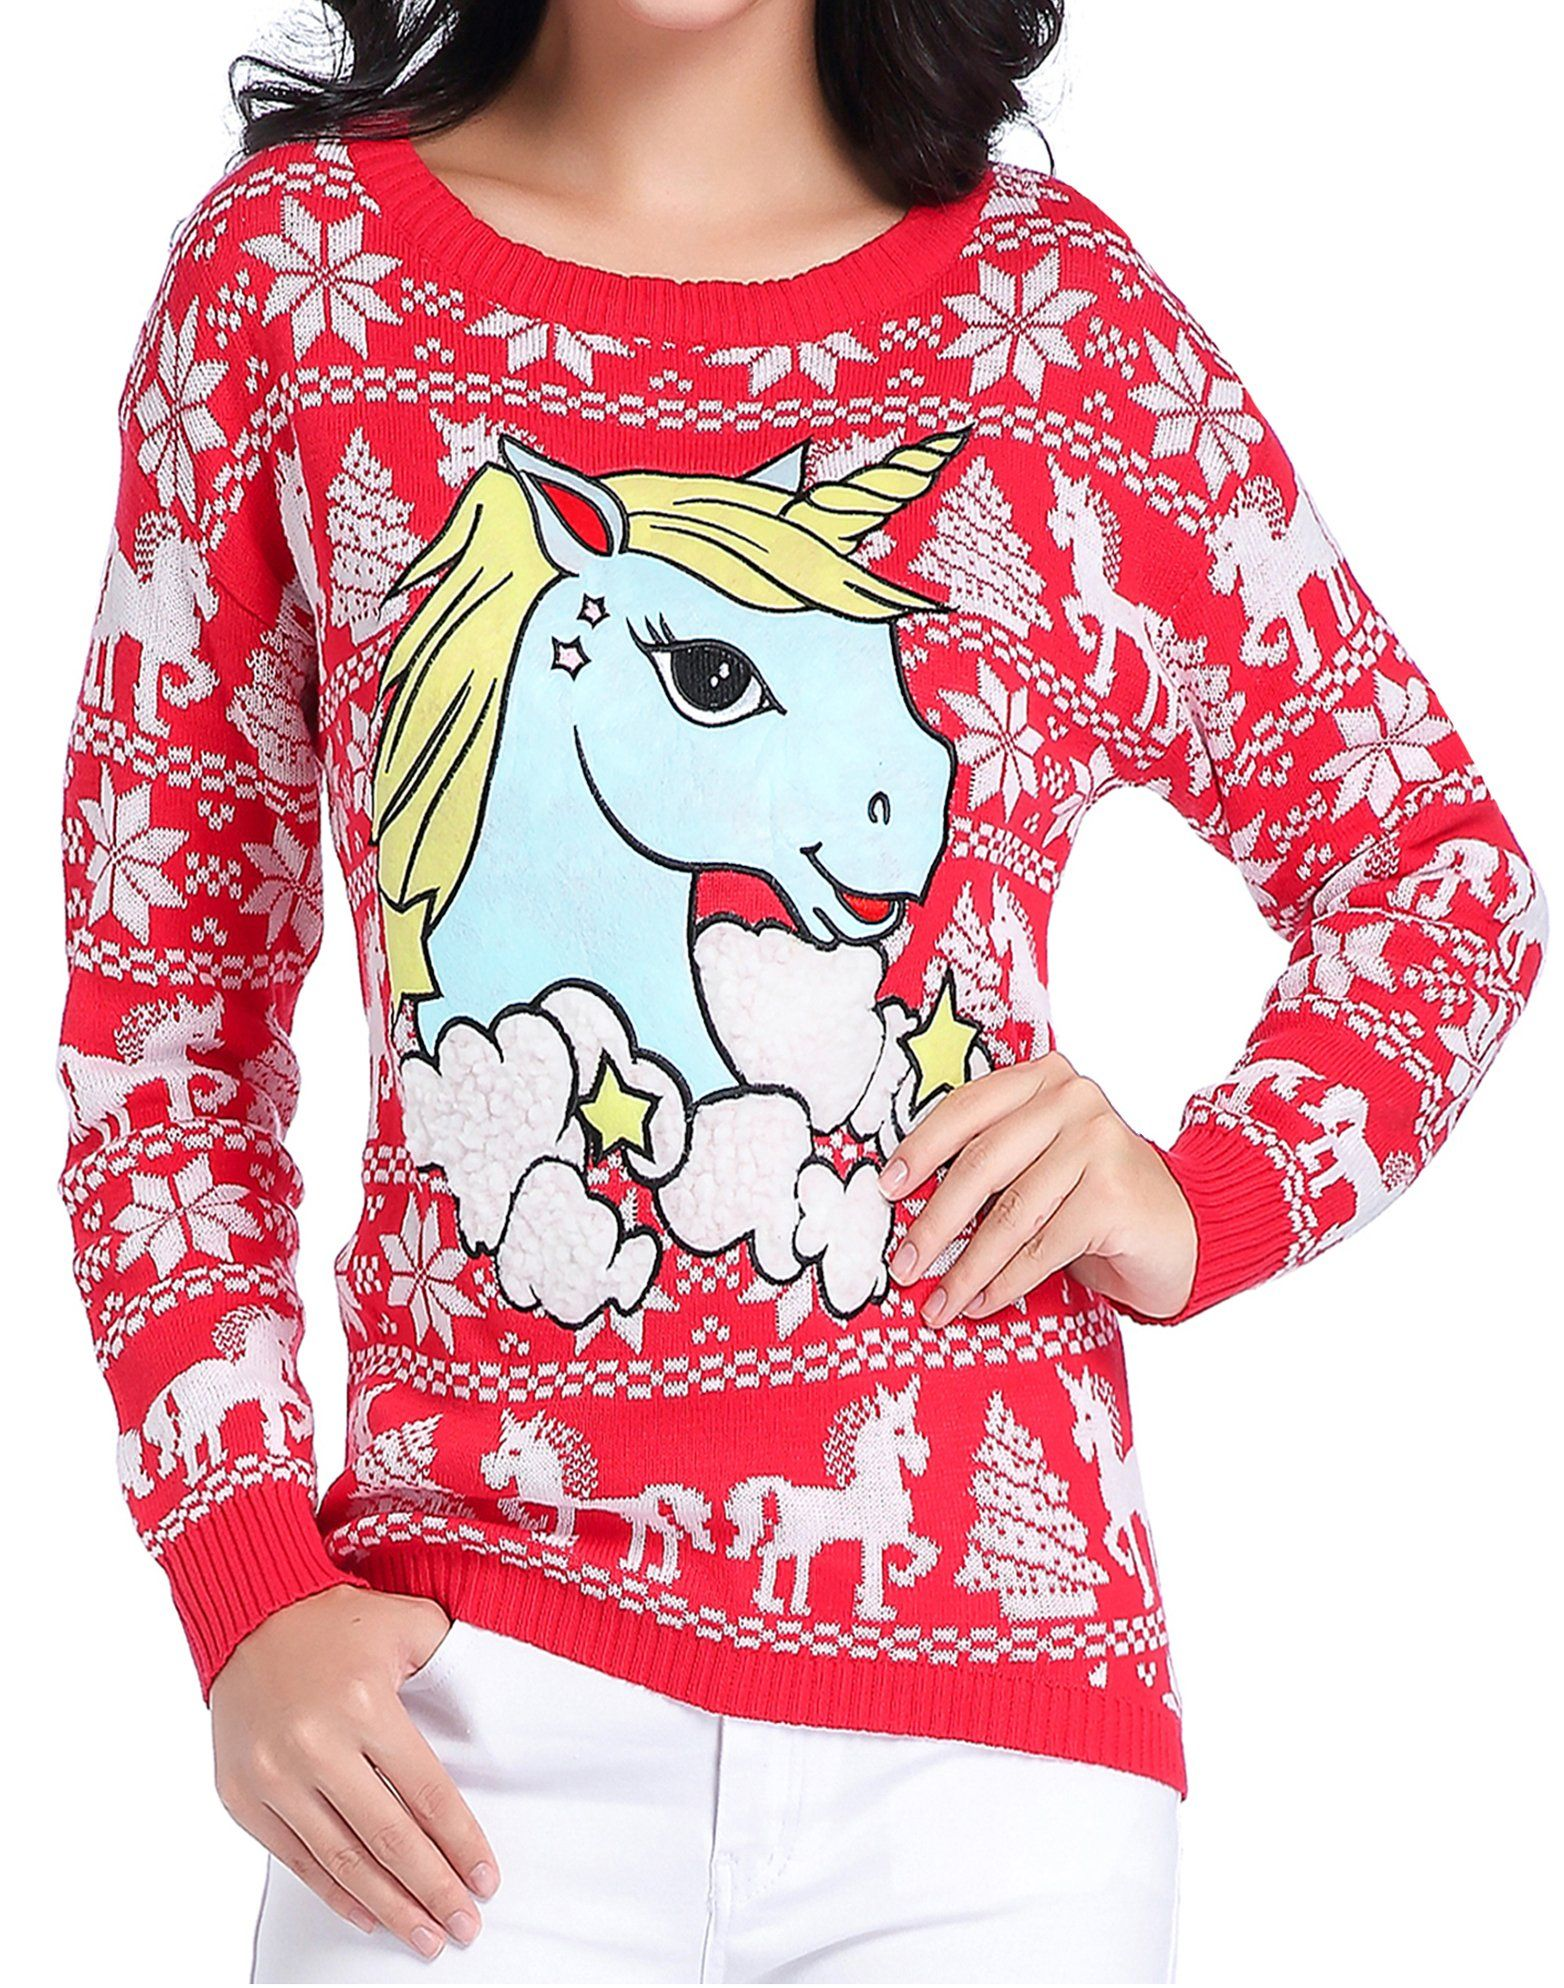 v28 Ugly Christmas Sweater, Women Girl Junior Unicorn Clothes Jumper ...